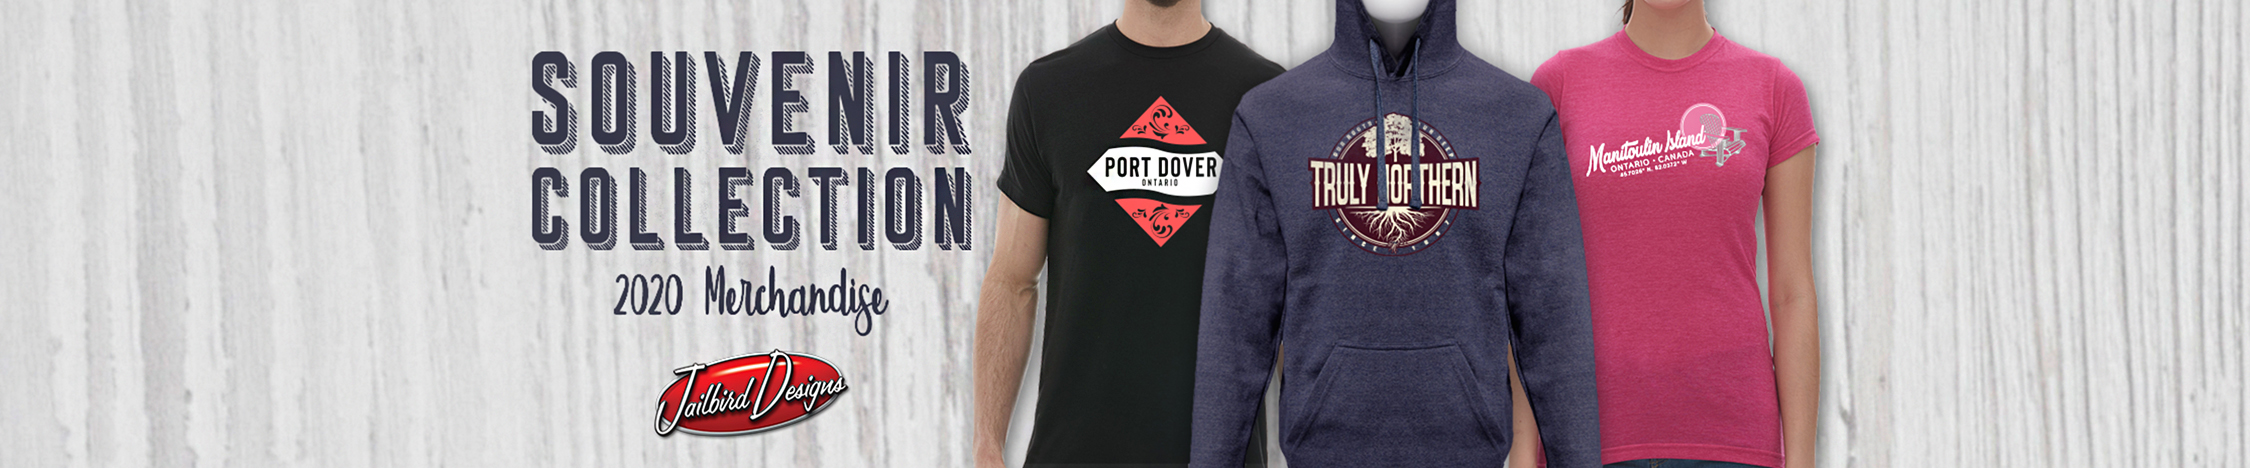 2020 Souvenir Collection - click here to go to the 2020 souvenir wear catalog - coolest souvenir clothing designs